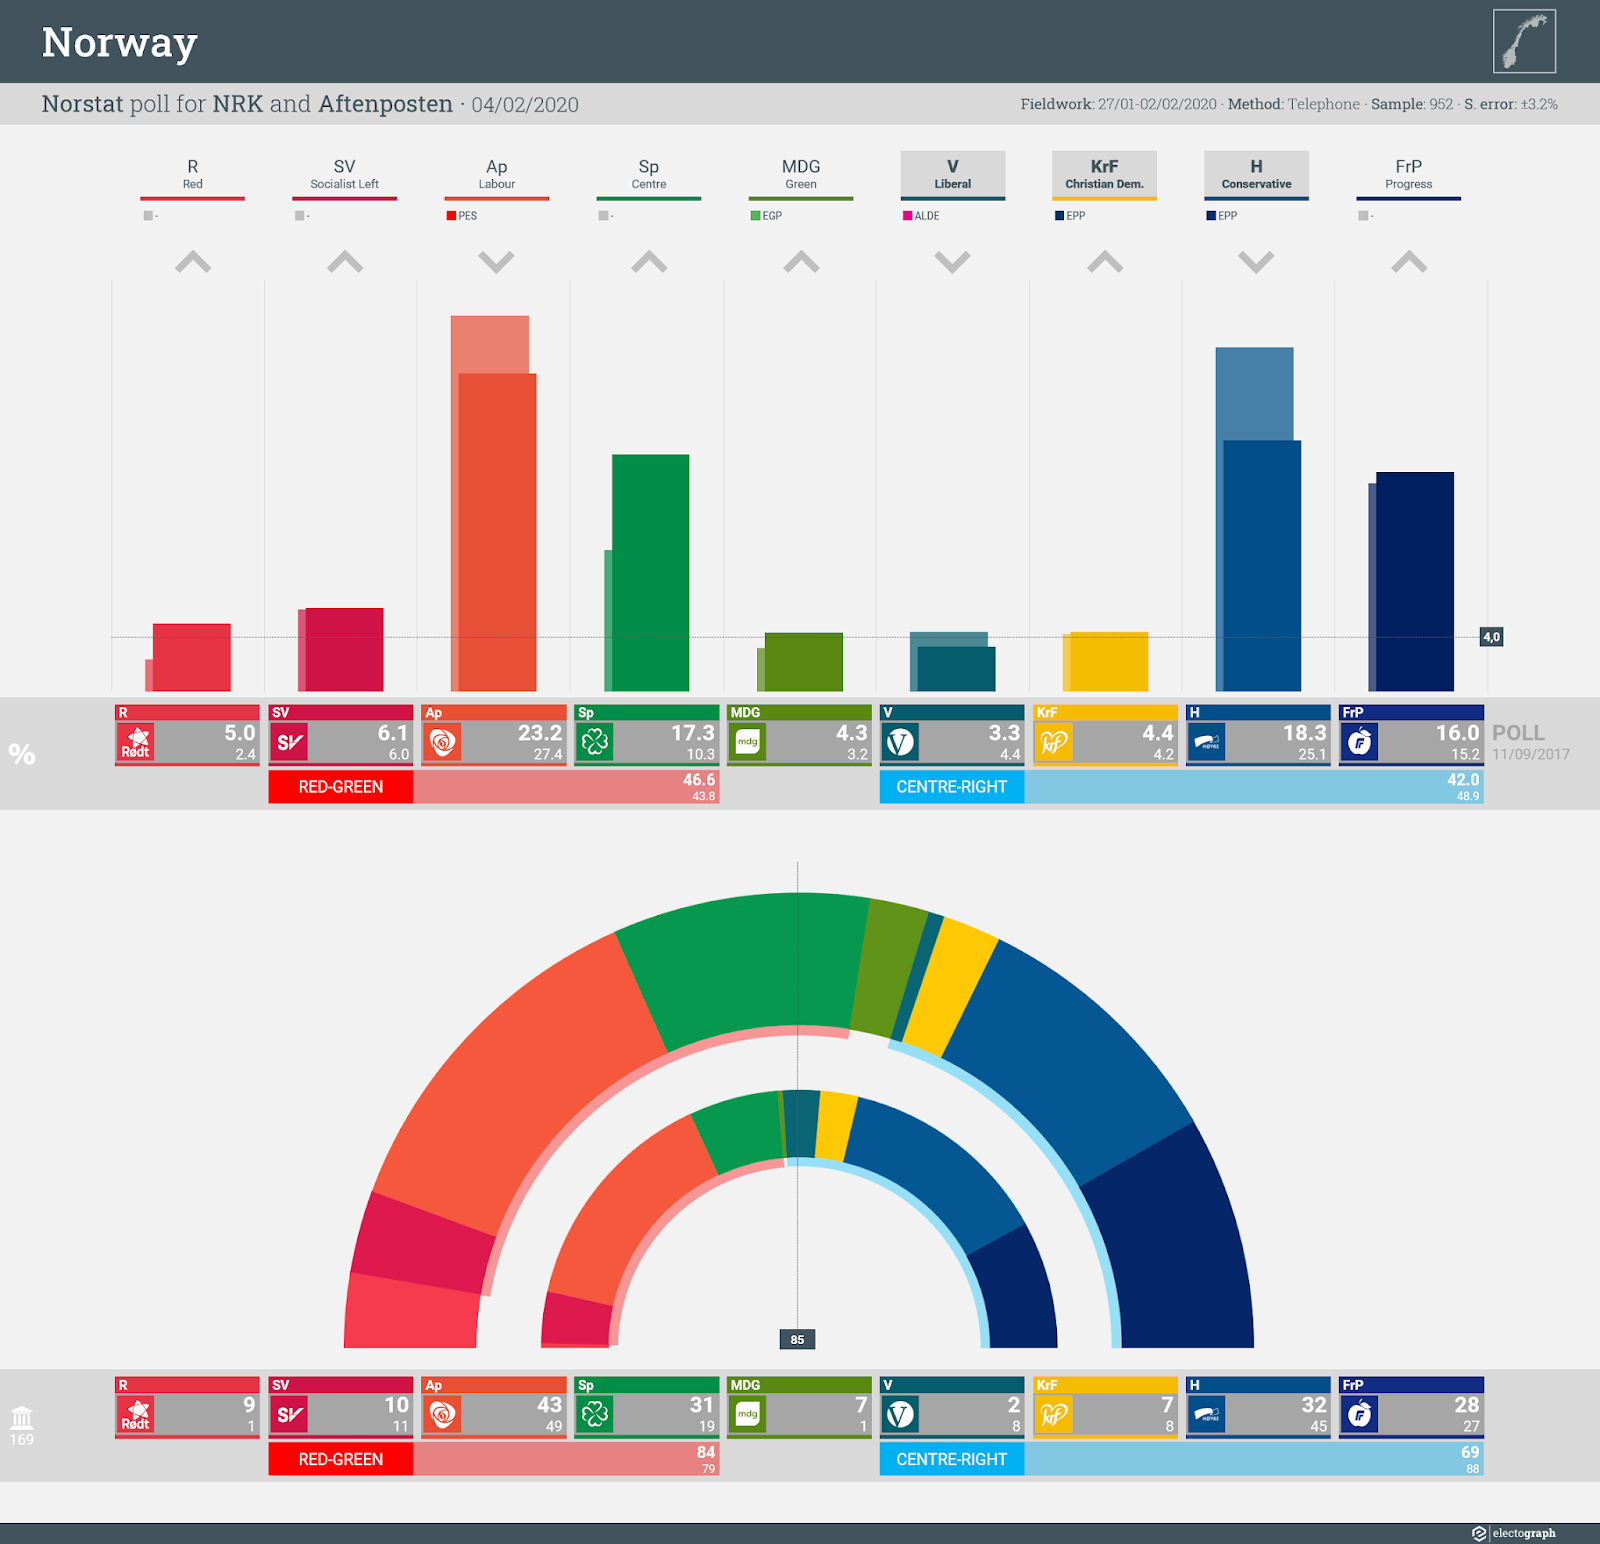 NORWAY: Norstat poll chart for NRK and Aftenposten, 4 February 2020